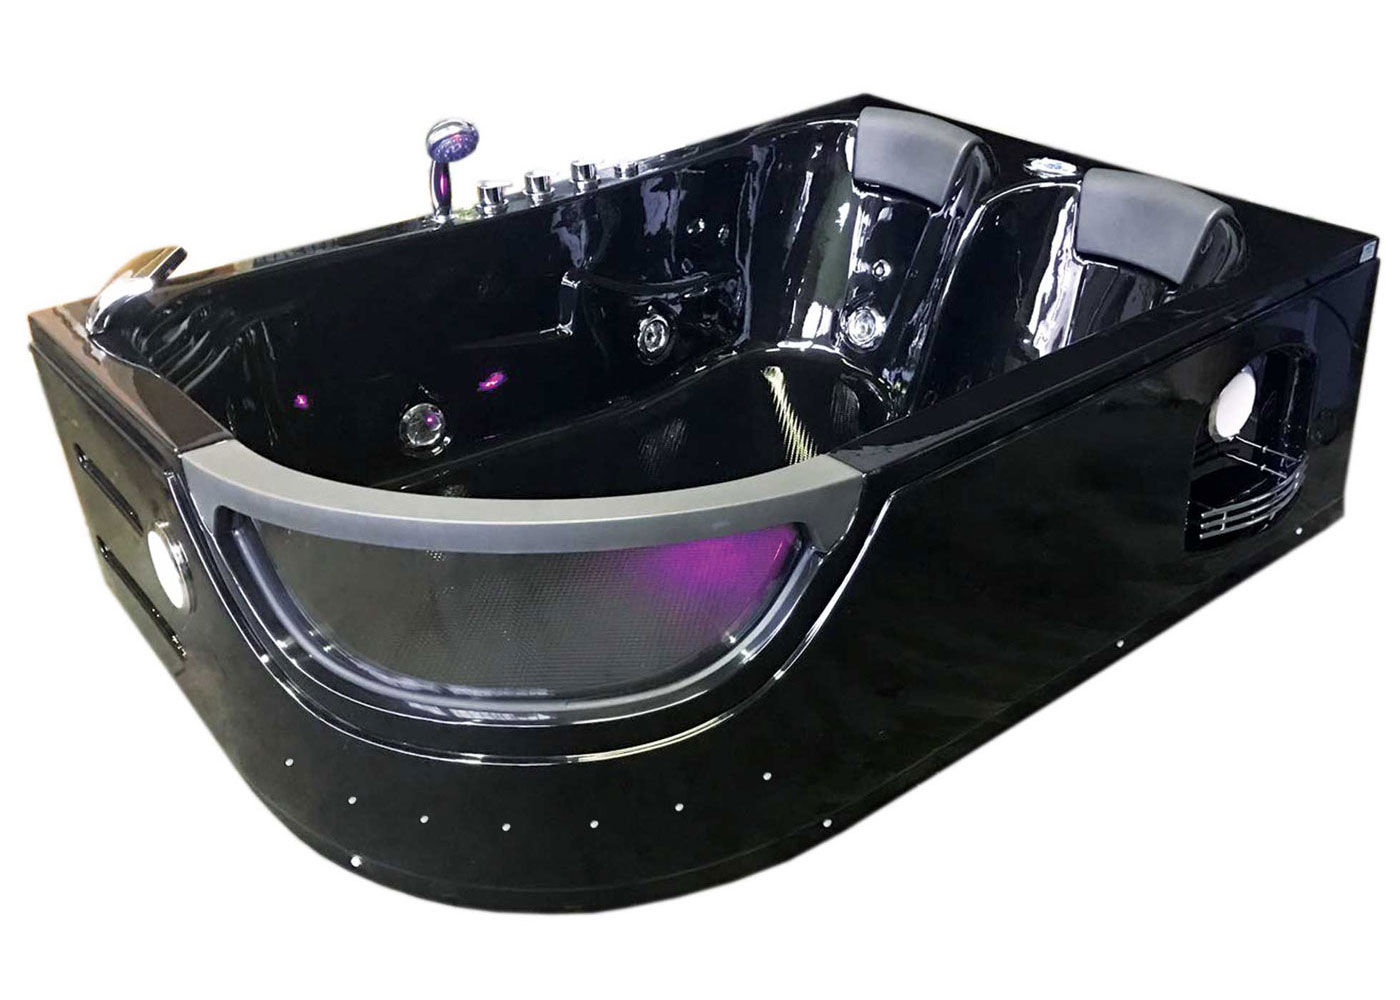 whirpool-bathtub-Orion1